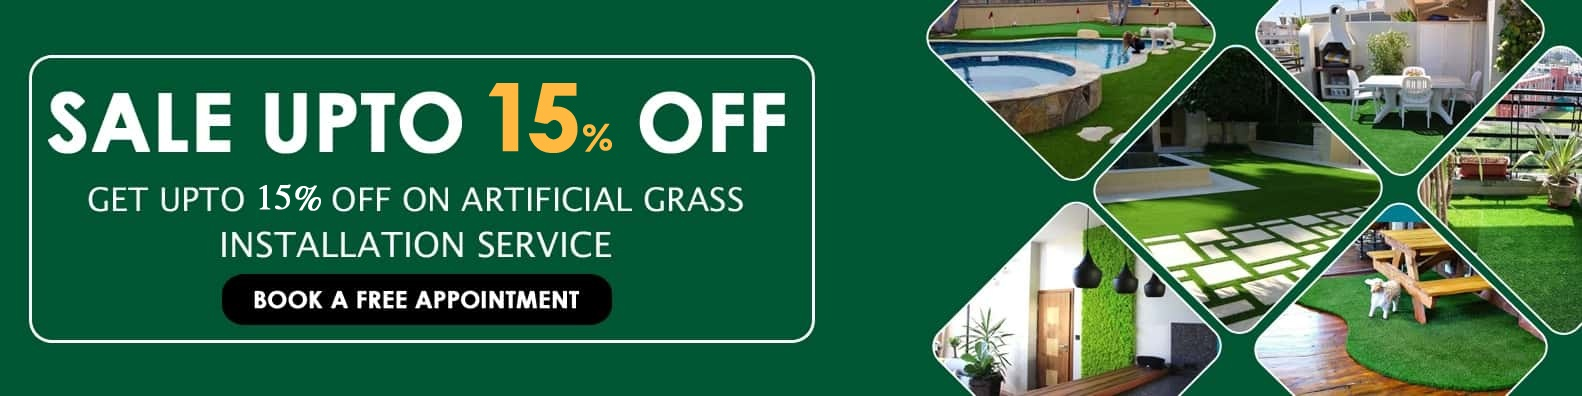 artificial grass installation service at discount price